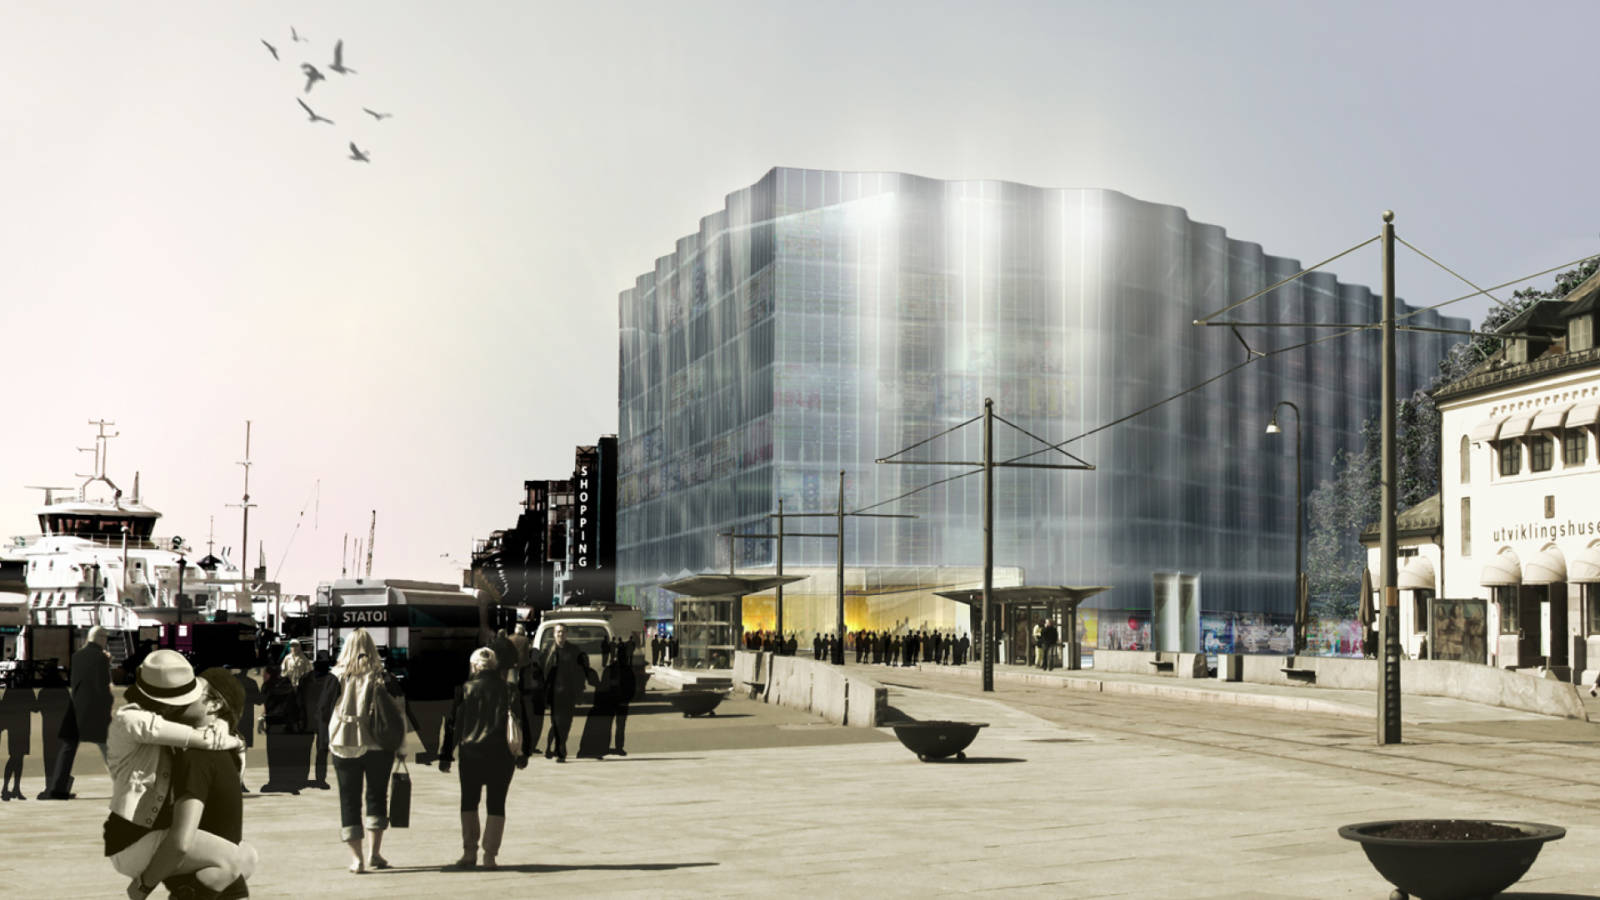 CLEAN CUT ENTRANCE - Aker Brygge Masterplan - SPOL Architects